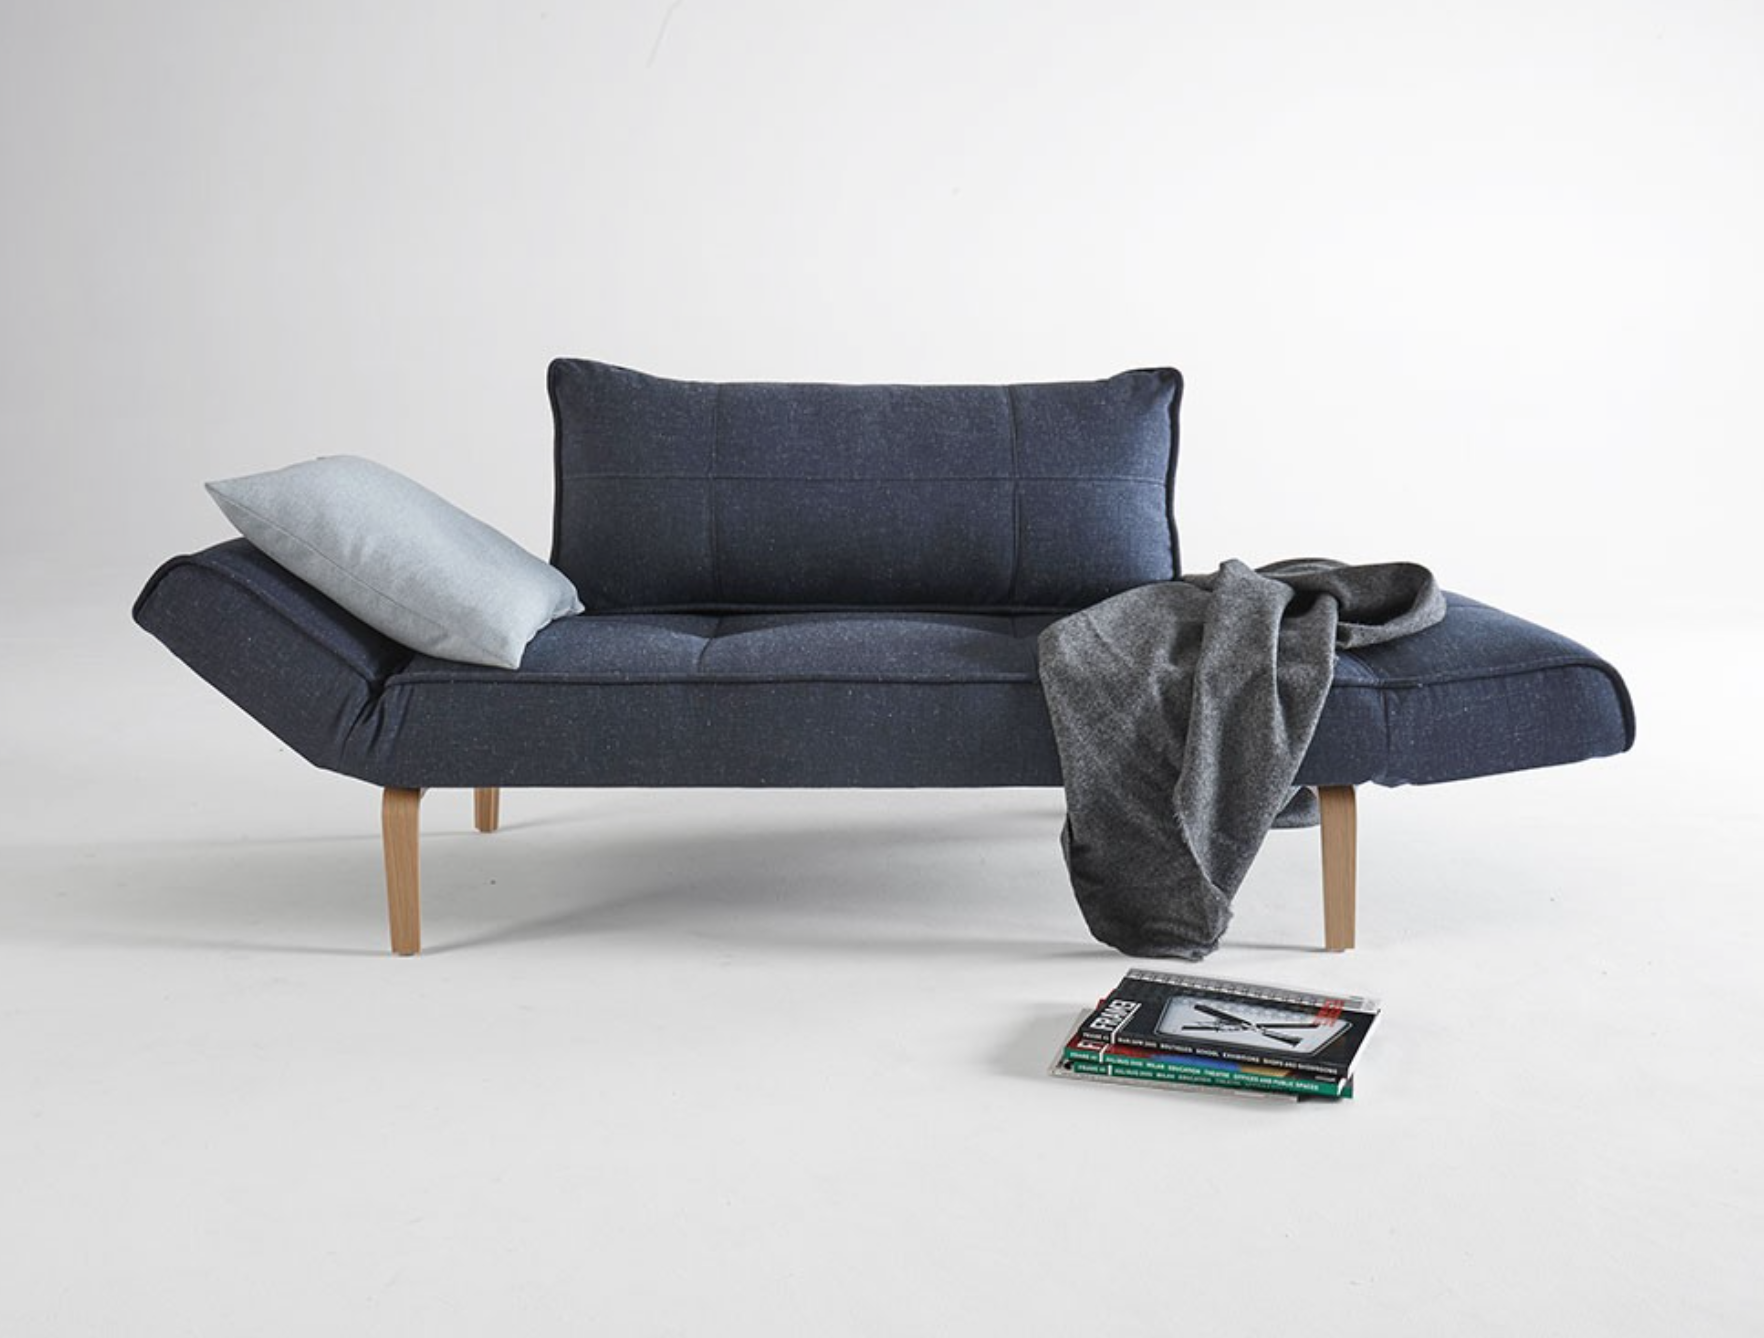 Zeal deluxe modern sofa bed nova interiors for Zeal sofa bed